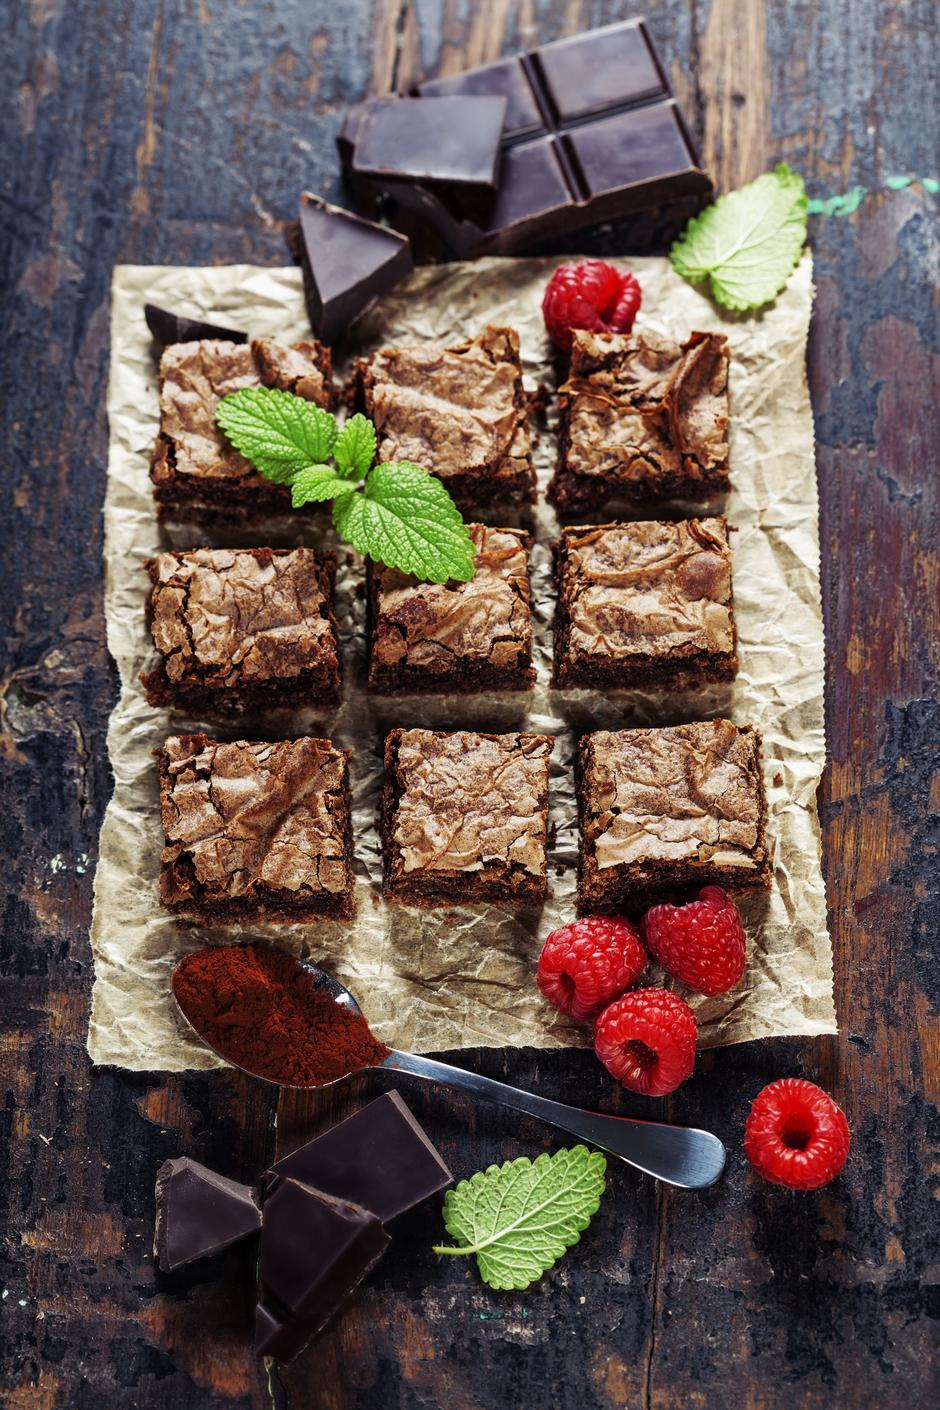 brownie | Author: Thinkstock